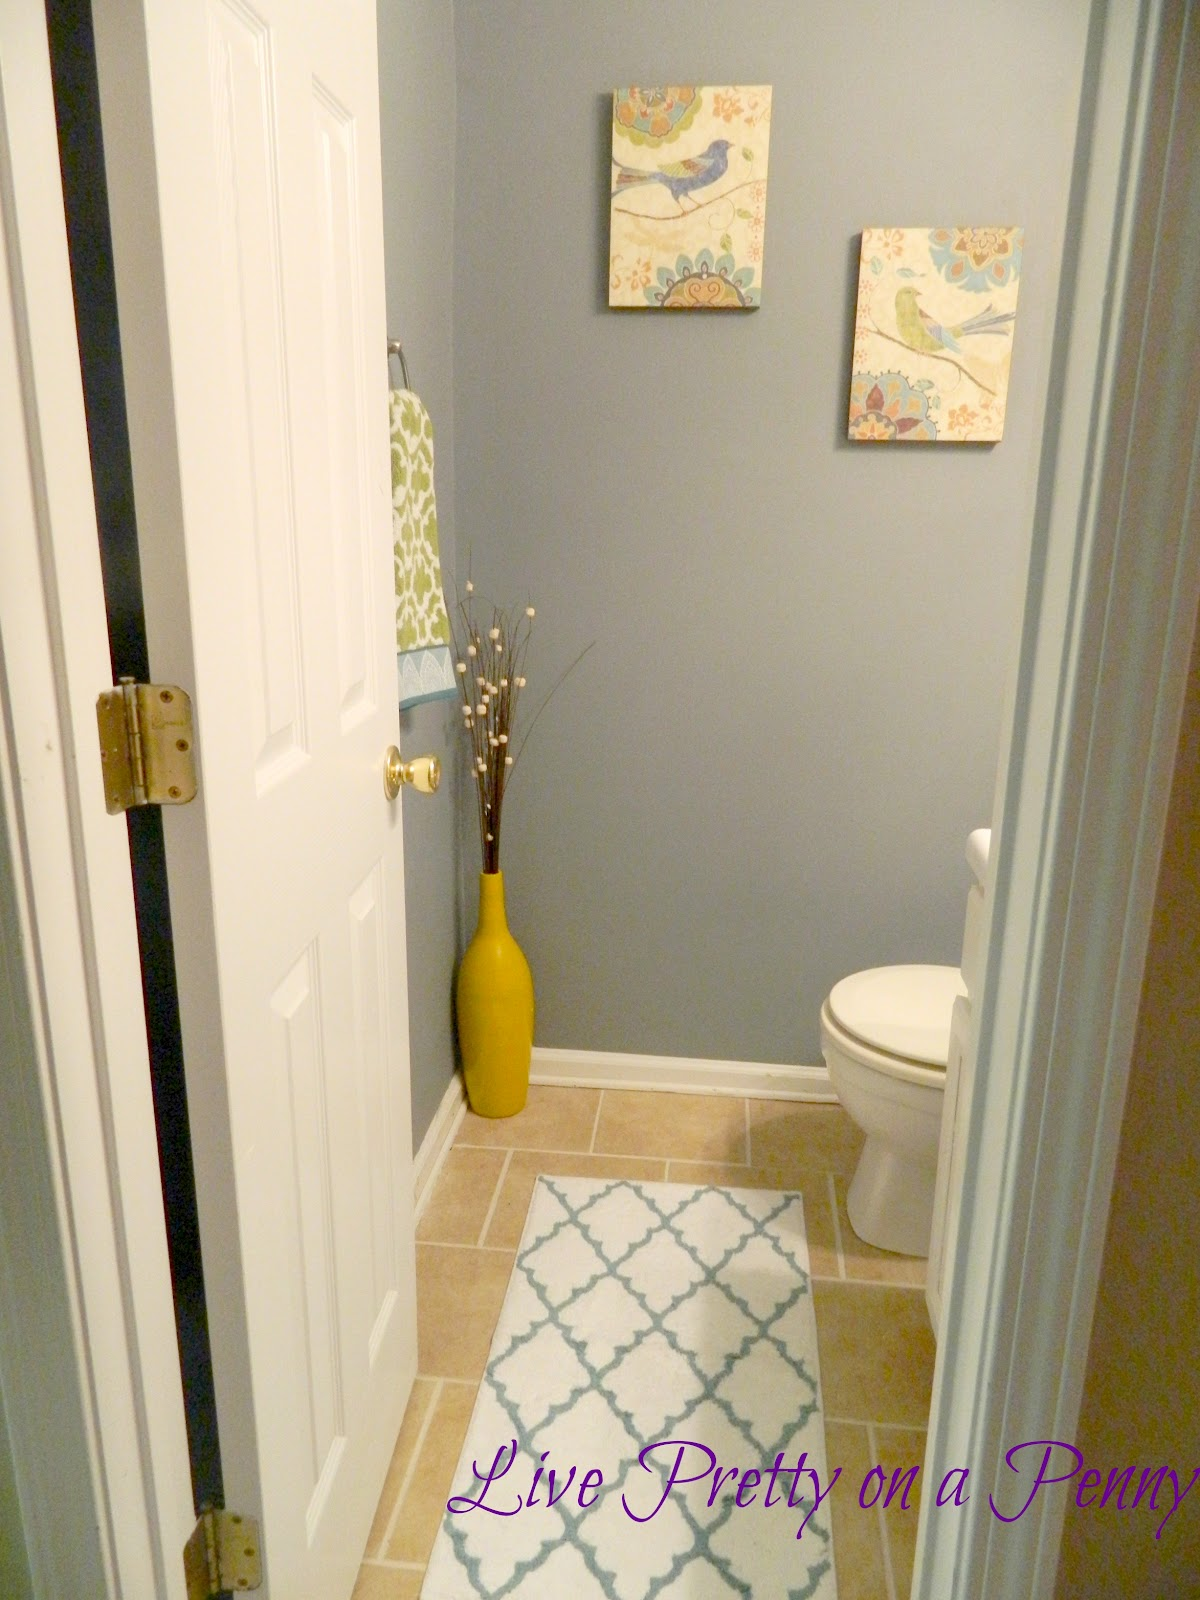 Budget half bath makeover live pretty on a penny - Half bath decor ideas ...